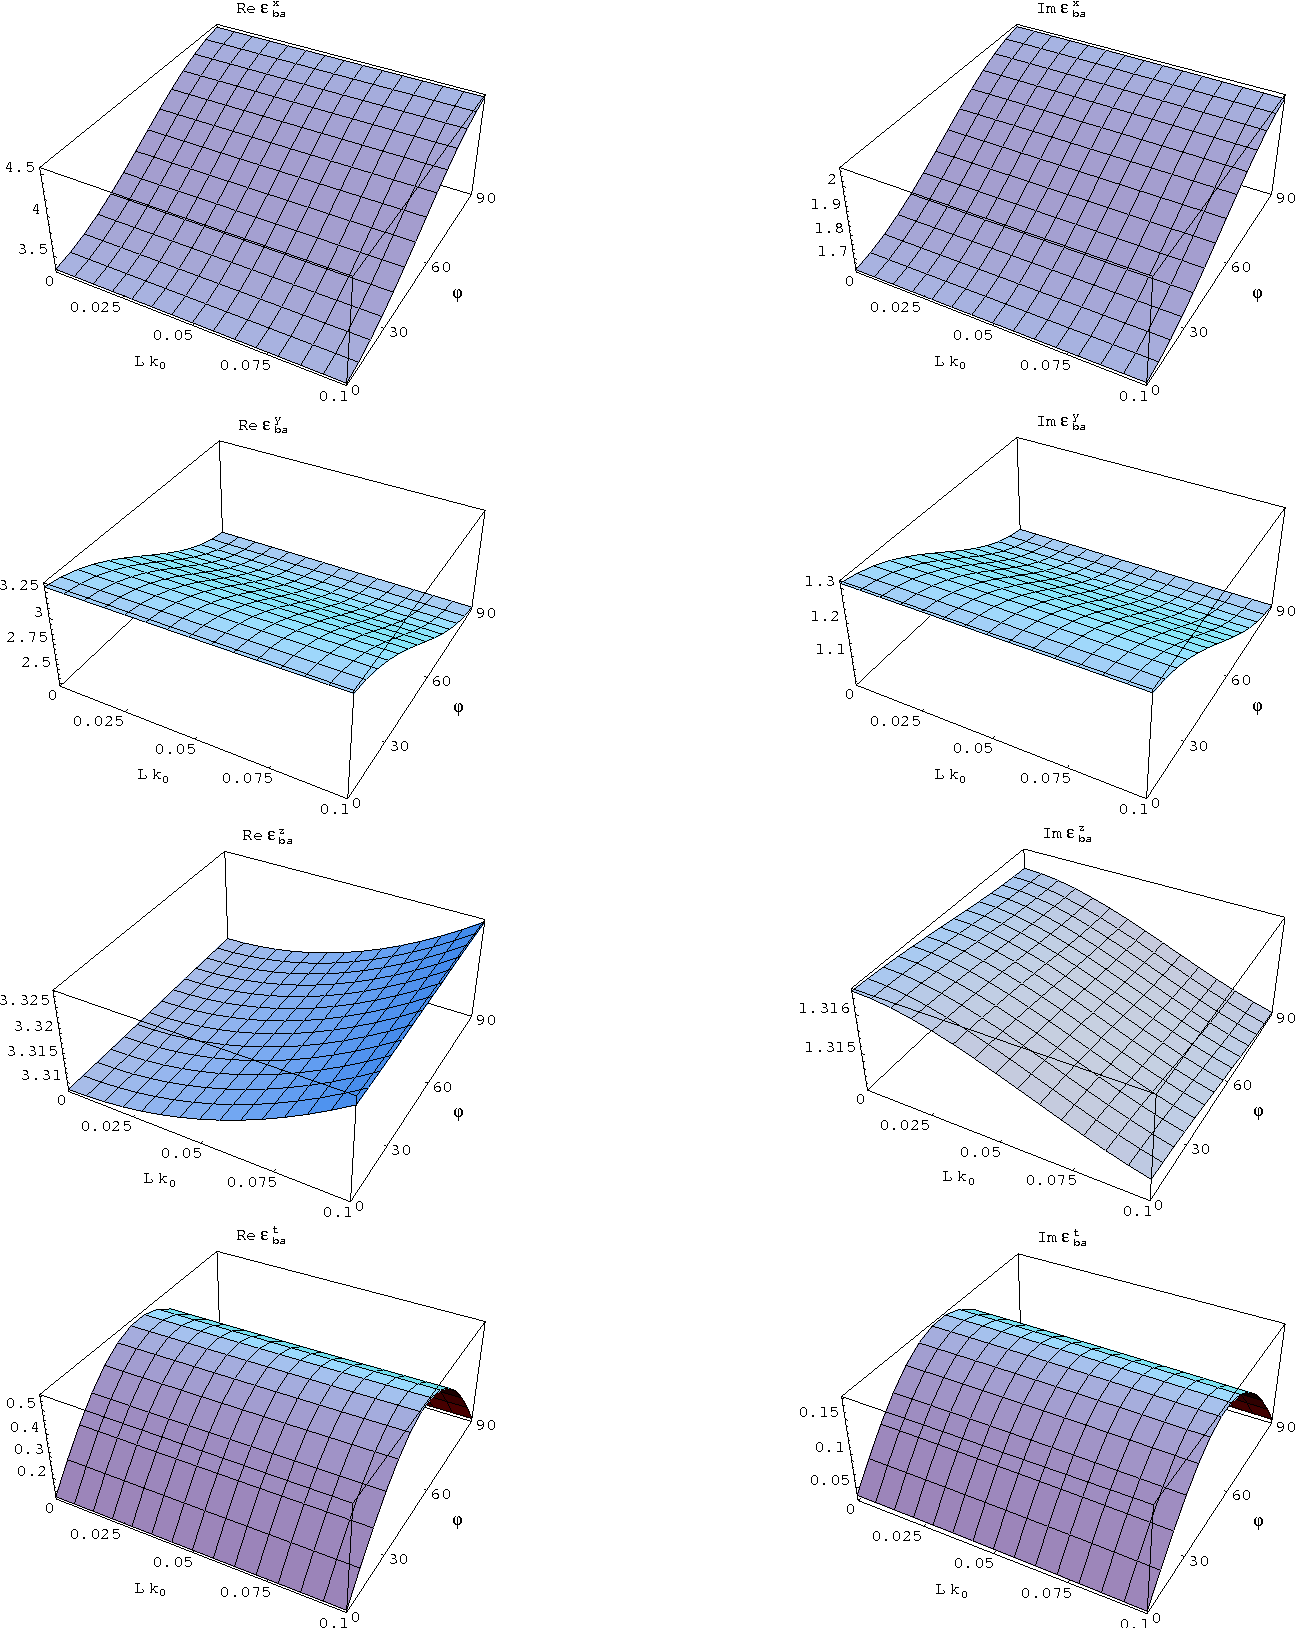 Figure 1: The real (left) and imaginary (right) parts of the components of ǫ̂ ba (0, 0, 0) ≡ ǫ ba plotted against the relative correlation length Lk0 and orientation angle ϕ (in degrees) of component phase a. The dissipation parameter δ = 1.10